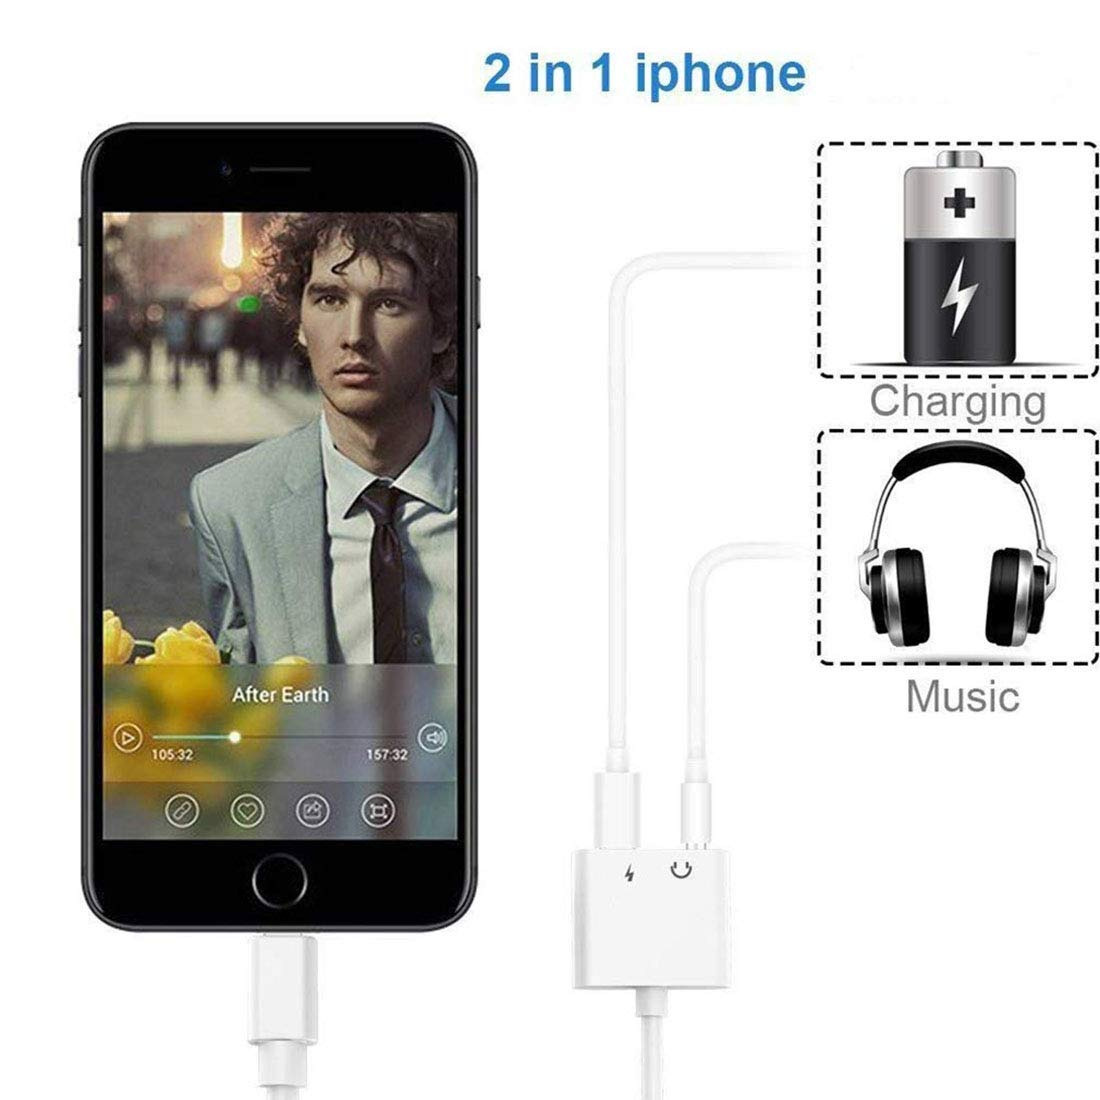 Adapter for iPhone 8 Audio and Charge Adapter for iPhone for iPhone 7//8Plus//XR//X//XS//XS max Earphones Adapter Jack Splitter Dual in 1 Music Charger Cables Charge /& Aux Audio Support iOS 12 grecab